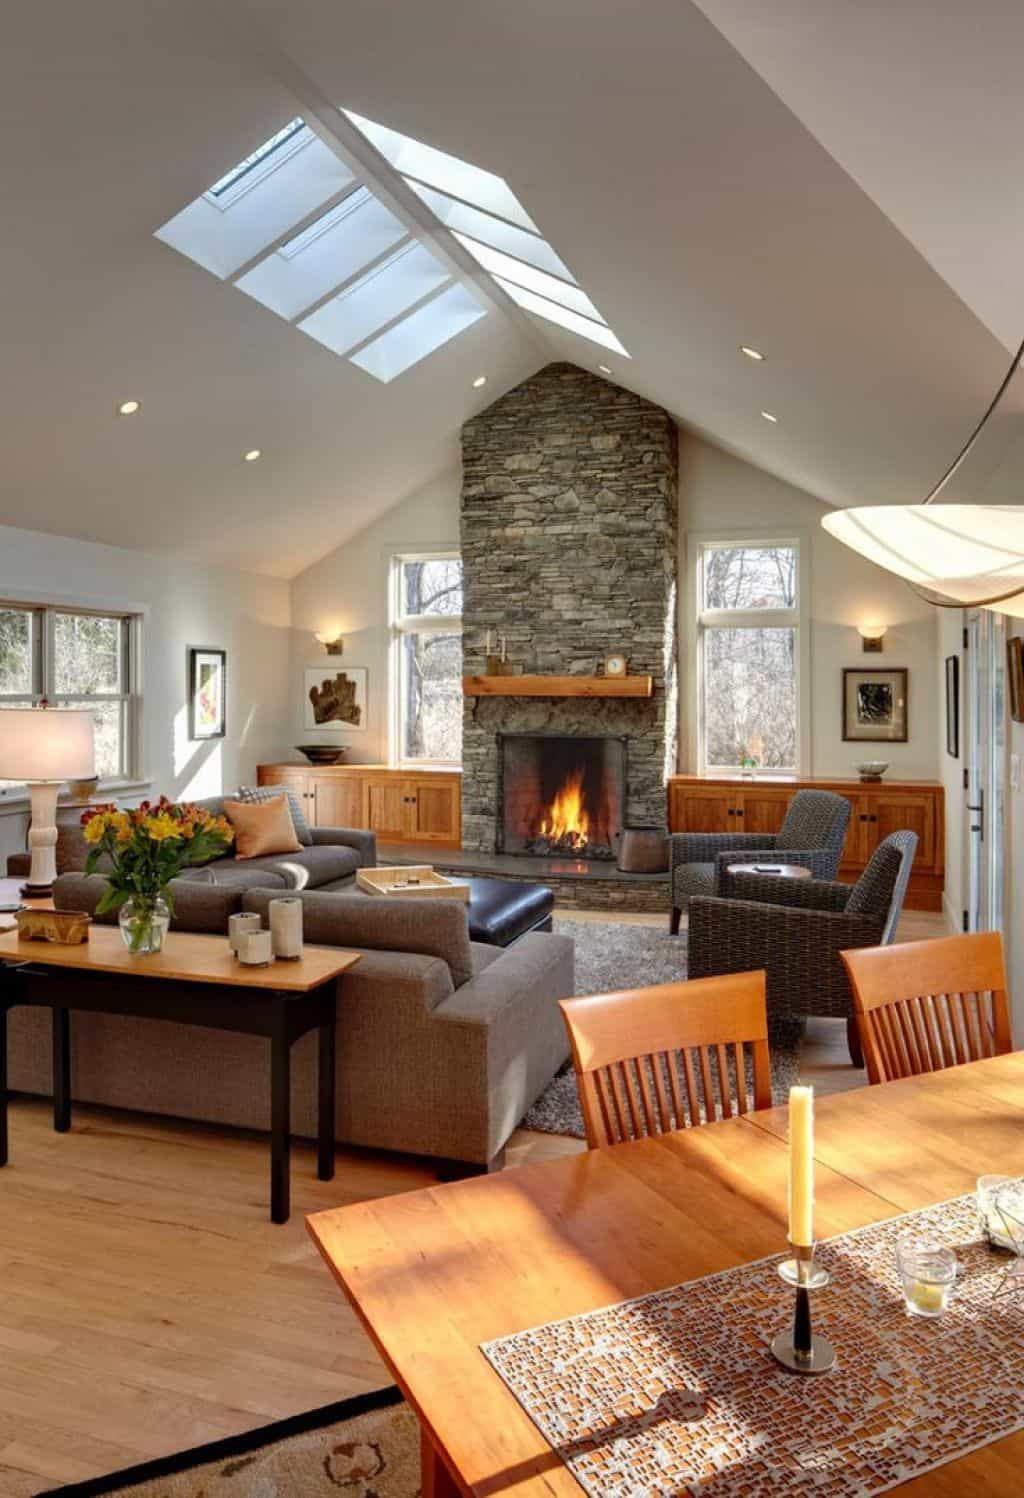 Vaulted Ceiling Lighting Fixtures Vaulted Ceiling Living Room Ceiling Lights Living Room Vaulted Ceiling Kitchen